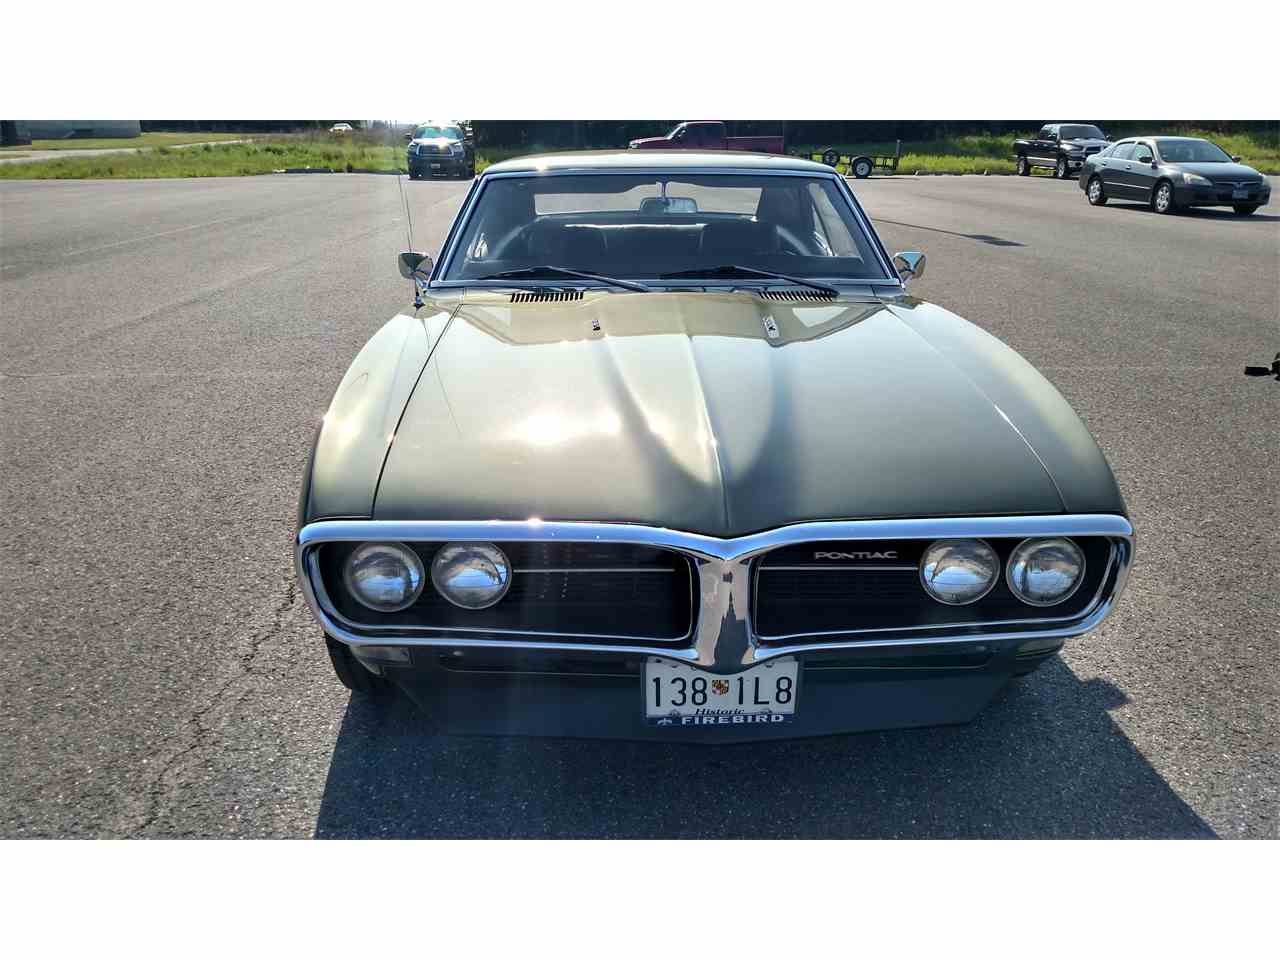 Large Picture of Classic '68 Firebird located in Lusby Maryland Offered by a Private Seller - NI9T